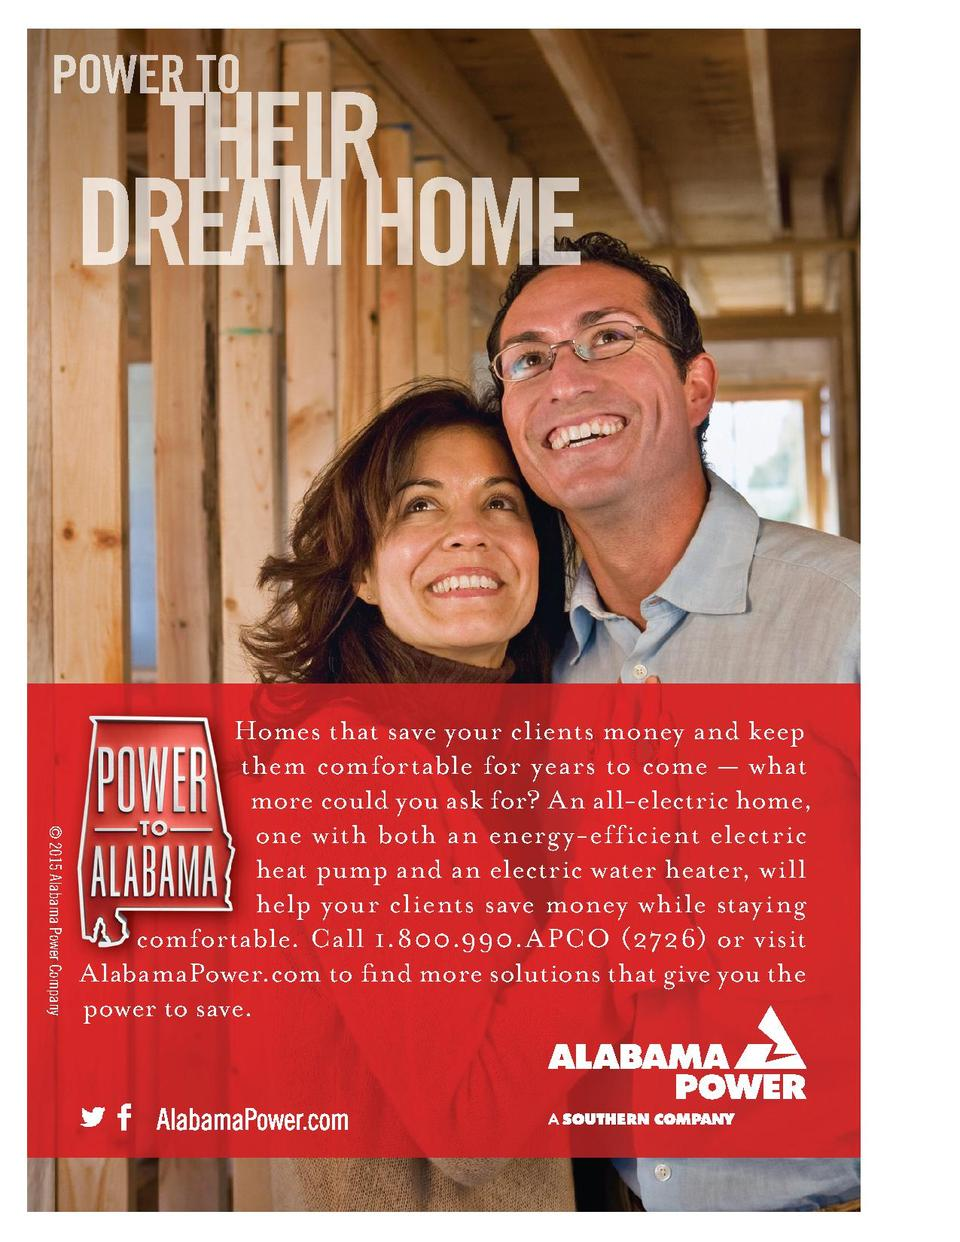 POWER TO  THEIR DREAM HOME     2015 Alabama Power Company  Homes that save your clients money and keep them comfortable fo...